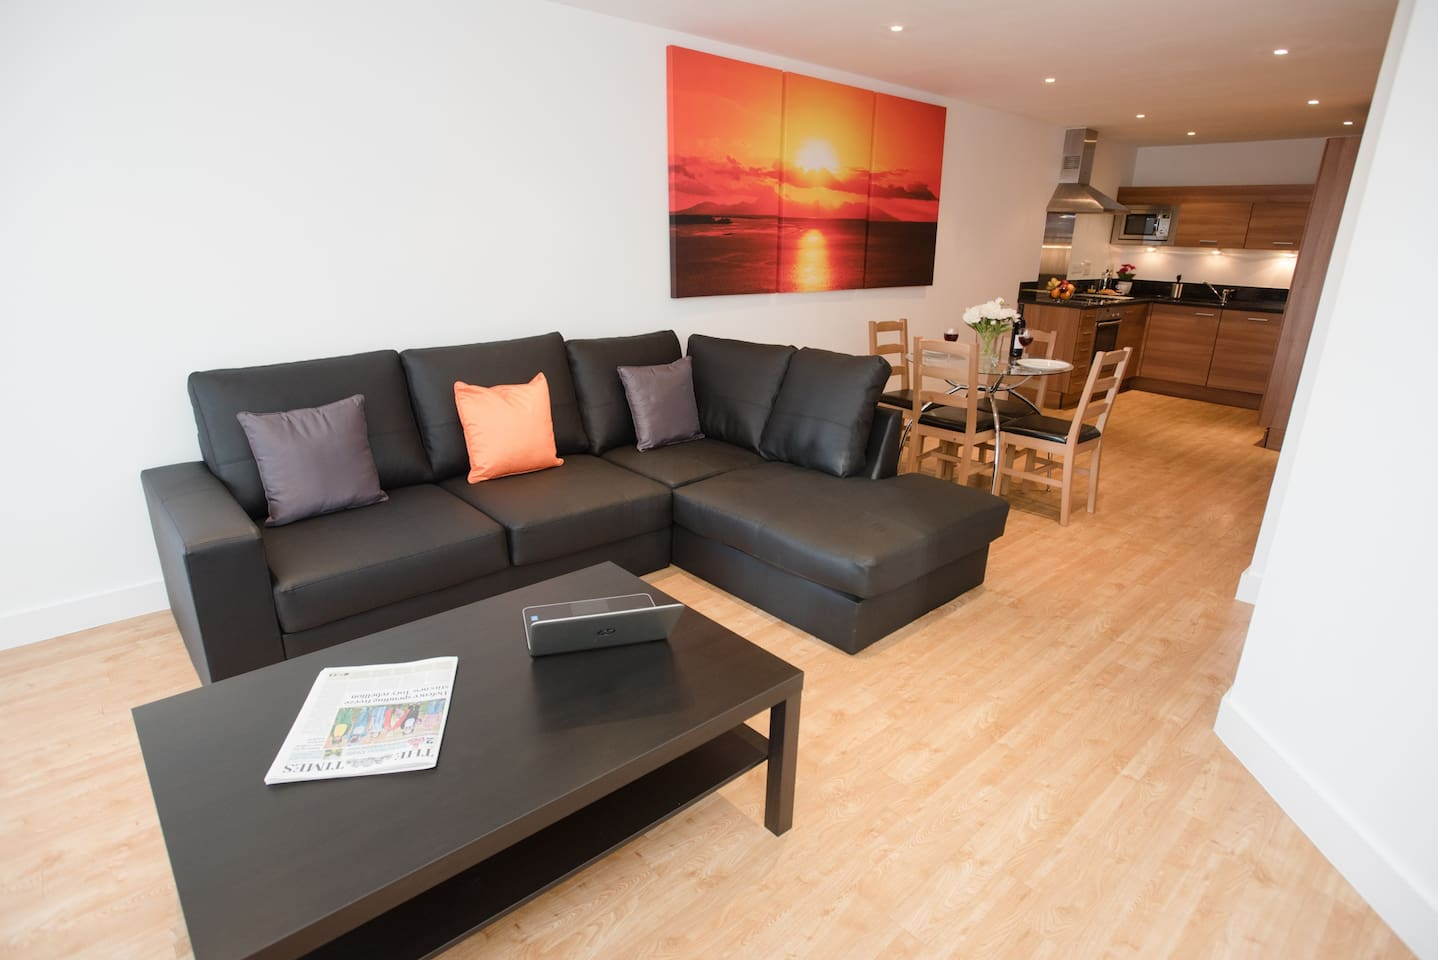 The images provided are of one of a number of apartments we have within Projection West and so while your apartment may not be identical to the apartment shown, the images provided offer a very accurate representation of the standard and décor of all our apartments.